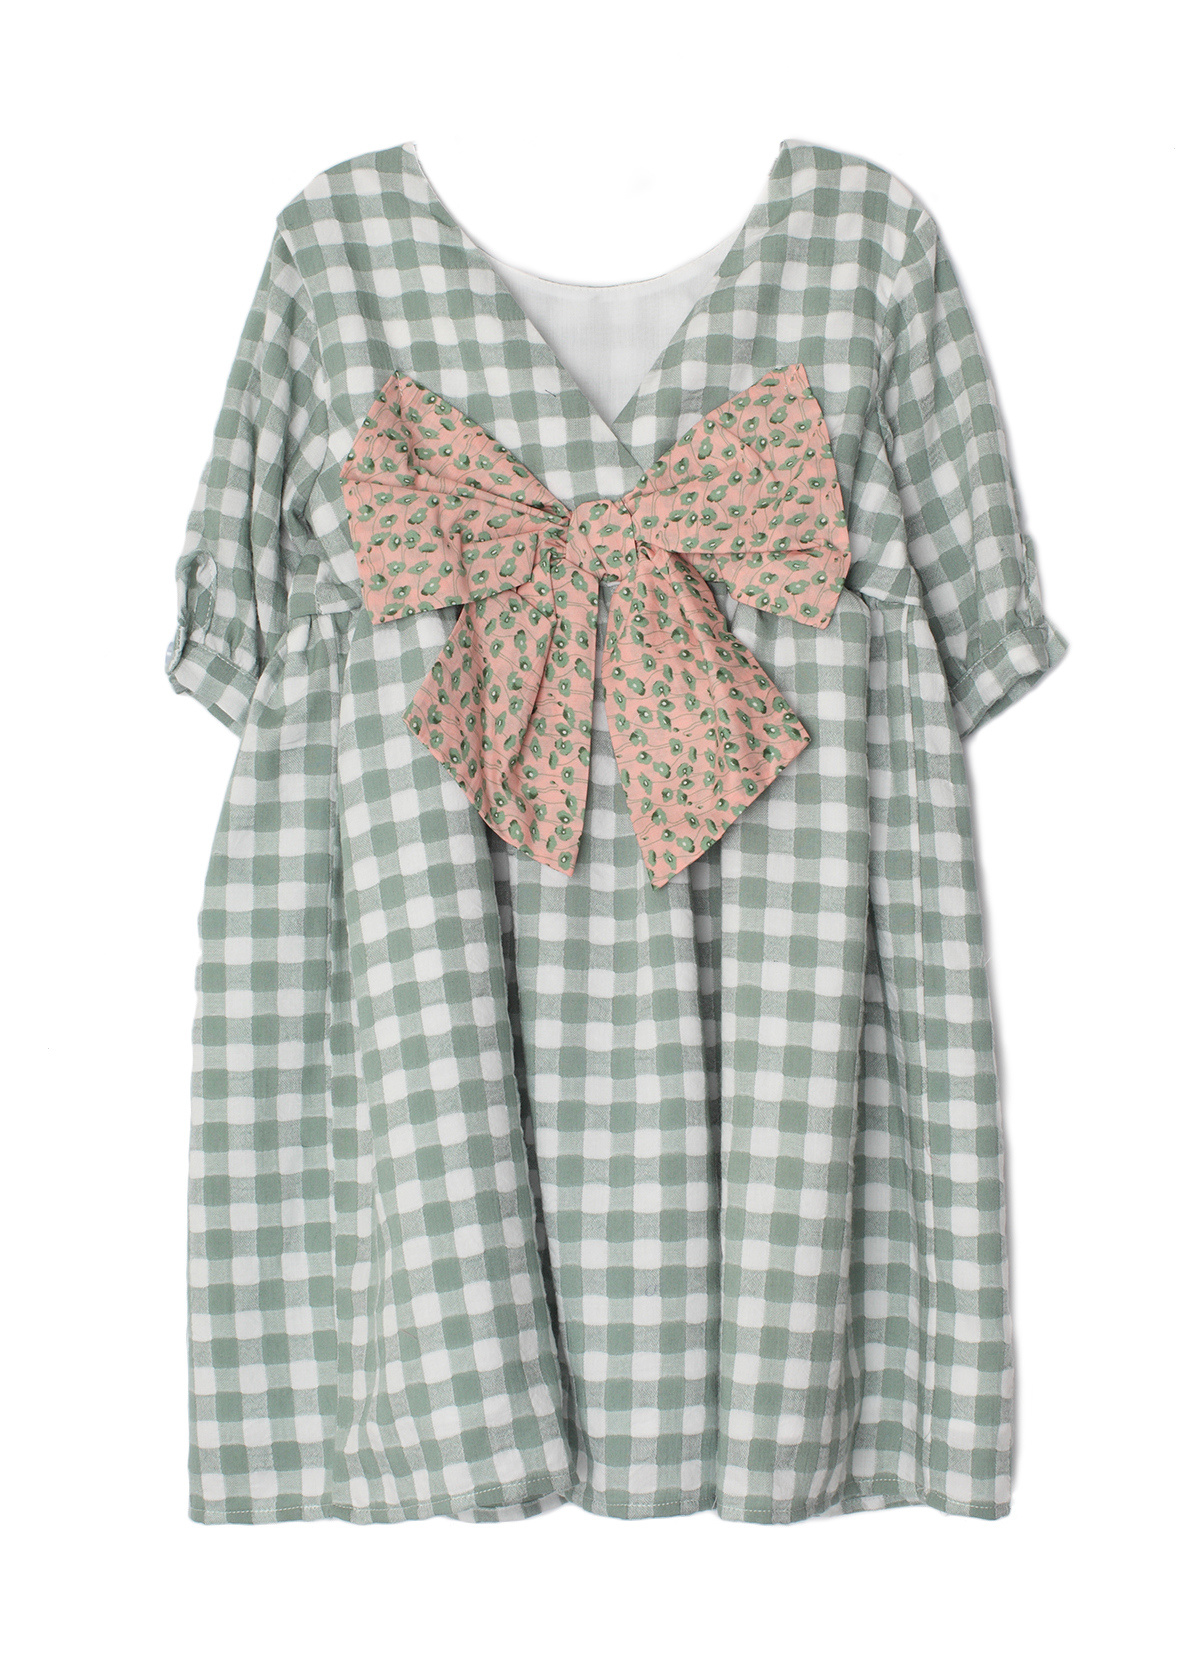 Mabel + Honey Natural Breeze Dress